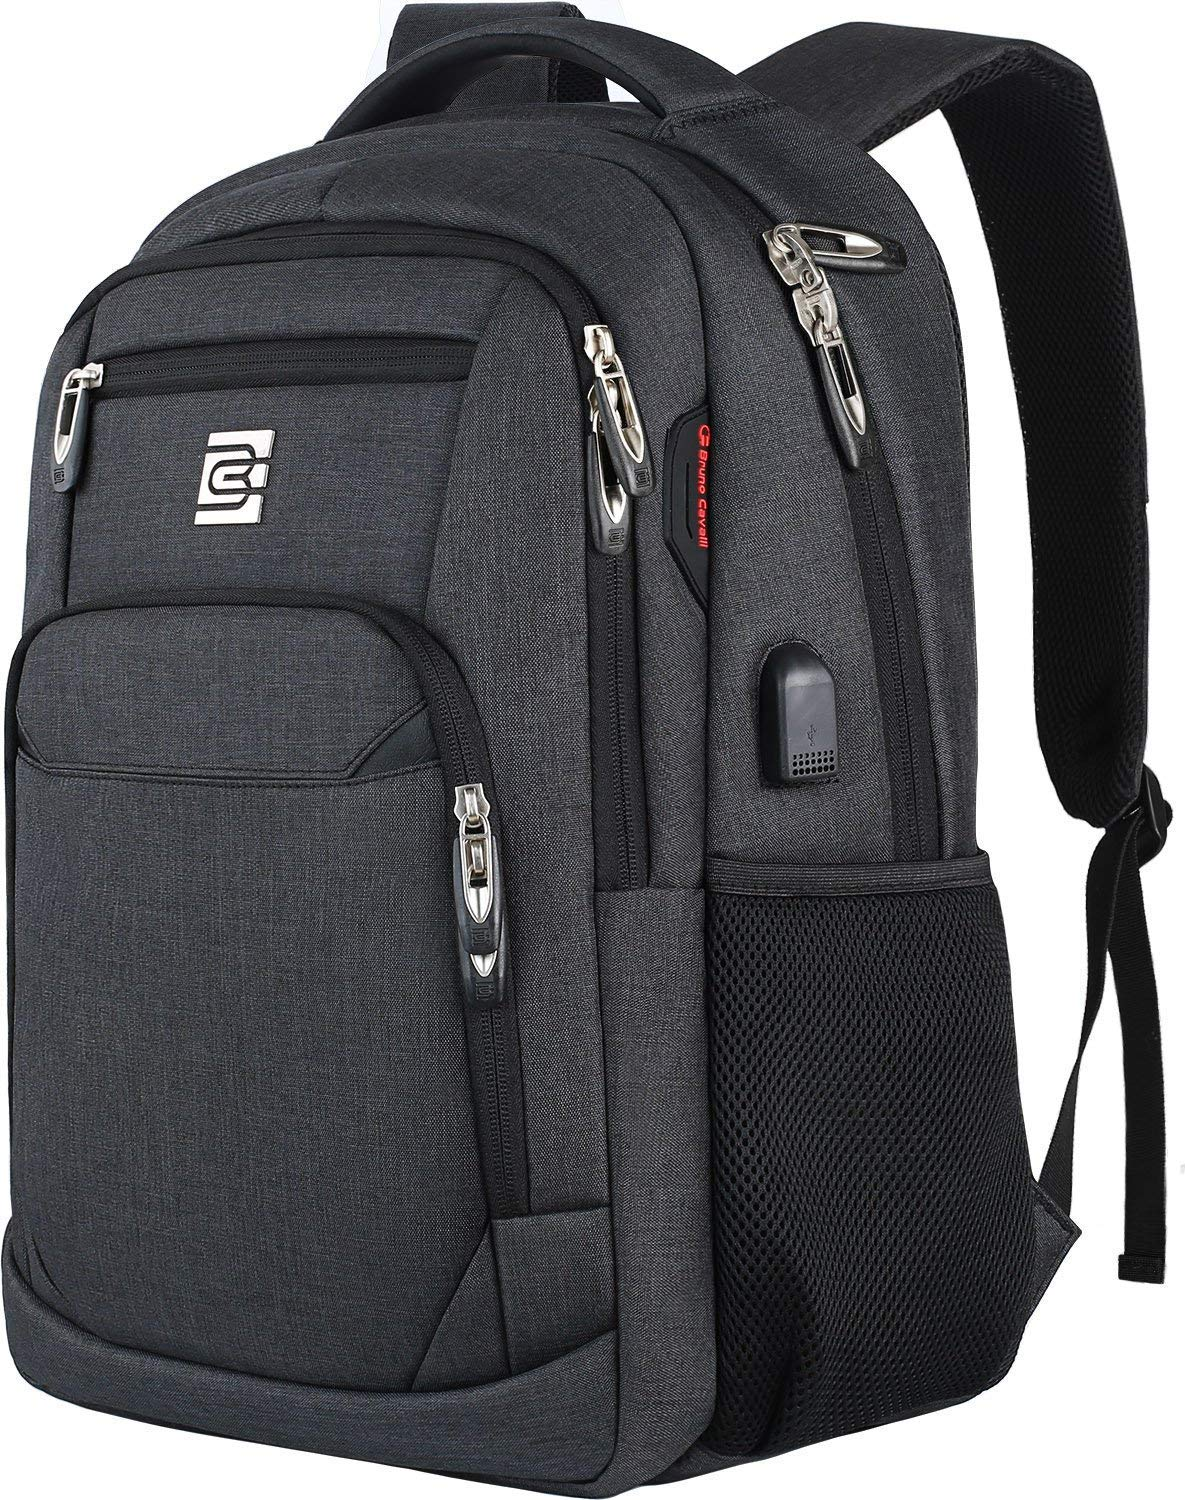 Laptop Backpack,Business Travel Anti Theft Slim Durable Laptops Backpack with USB Charging Port,Water Resistant College School Computer Bag for Women & Men Fits 15.6 Inch Laptop and Notebook - Black 1